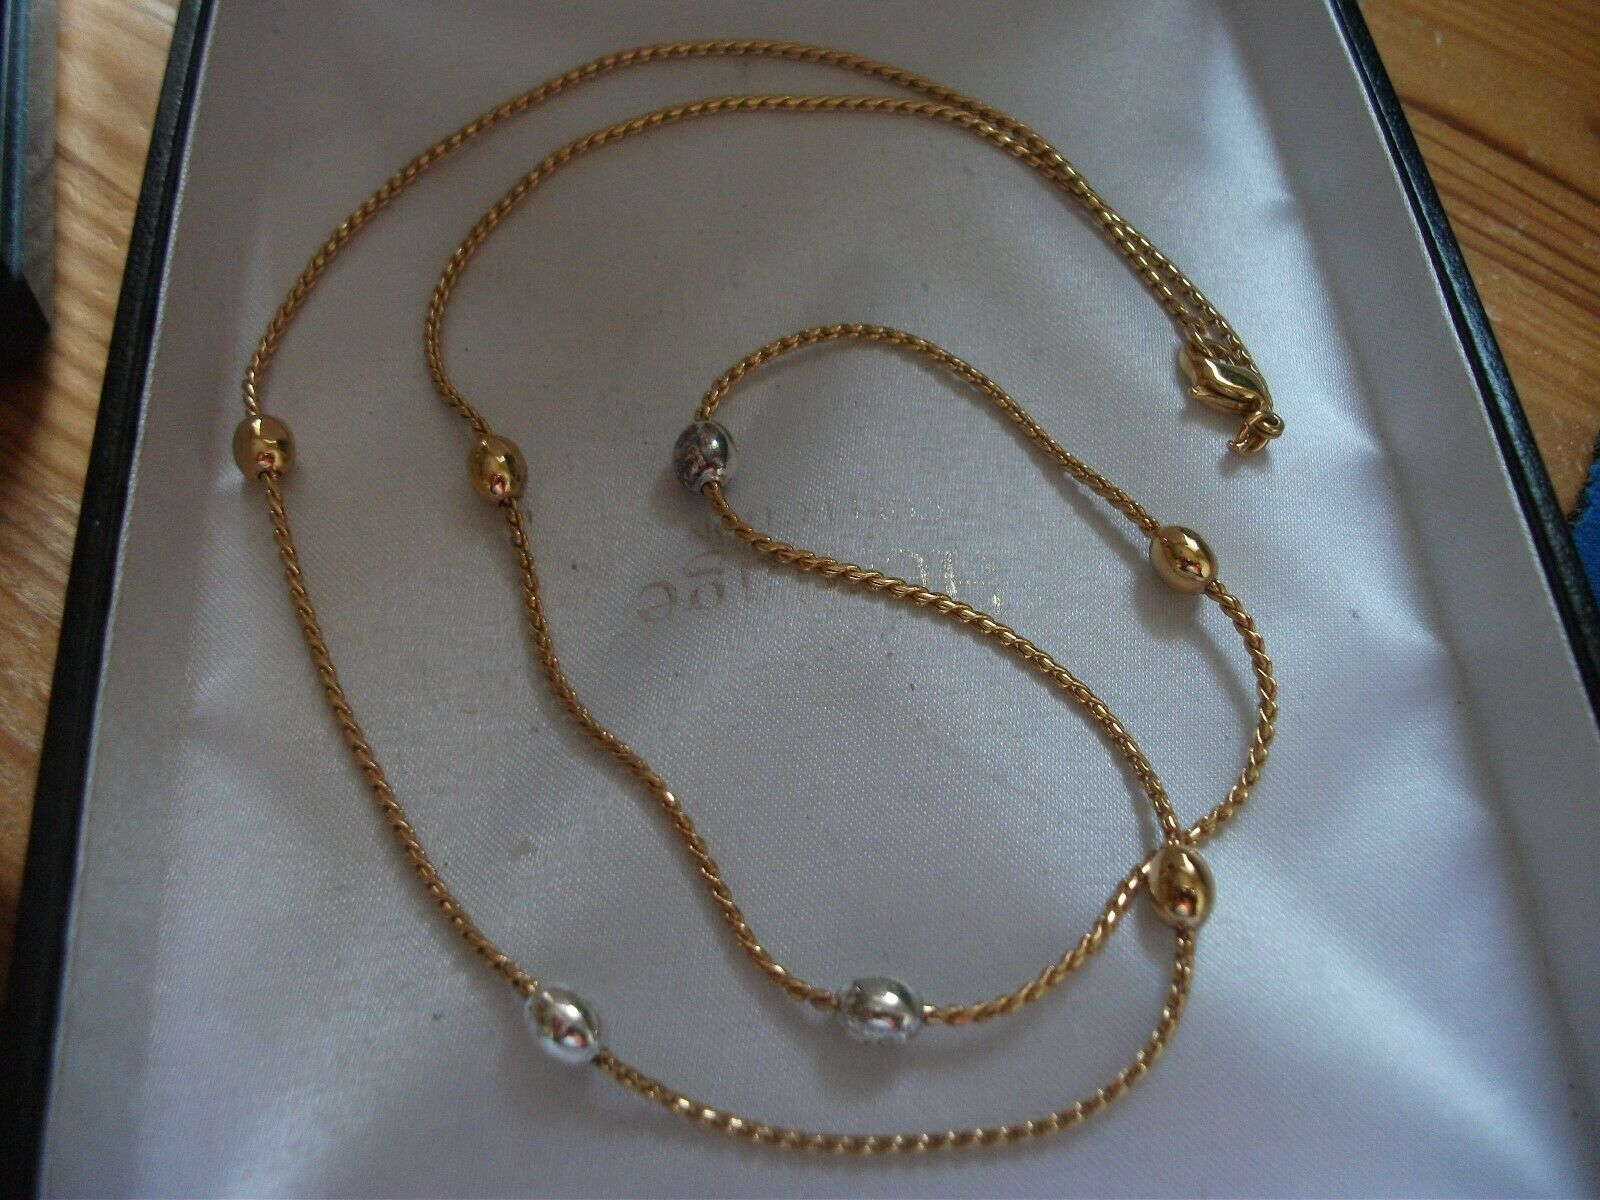 Jewellery - COSTUME JEWELLERY GOLD AND SILVER METAL NECKLACE GOOD QUALITY